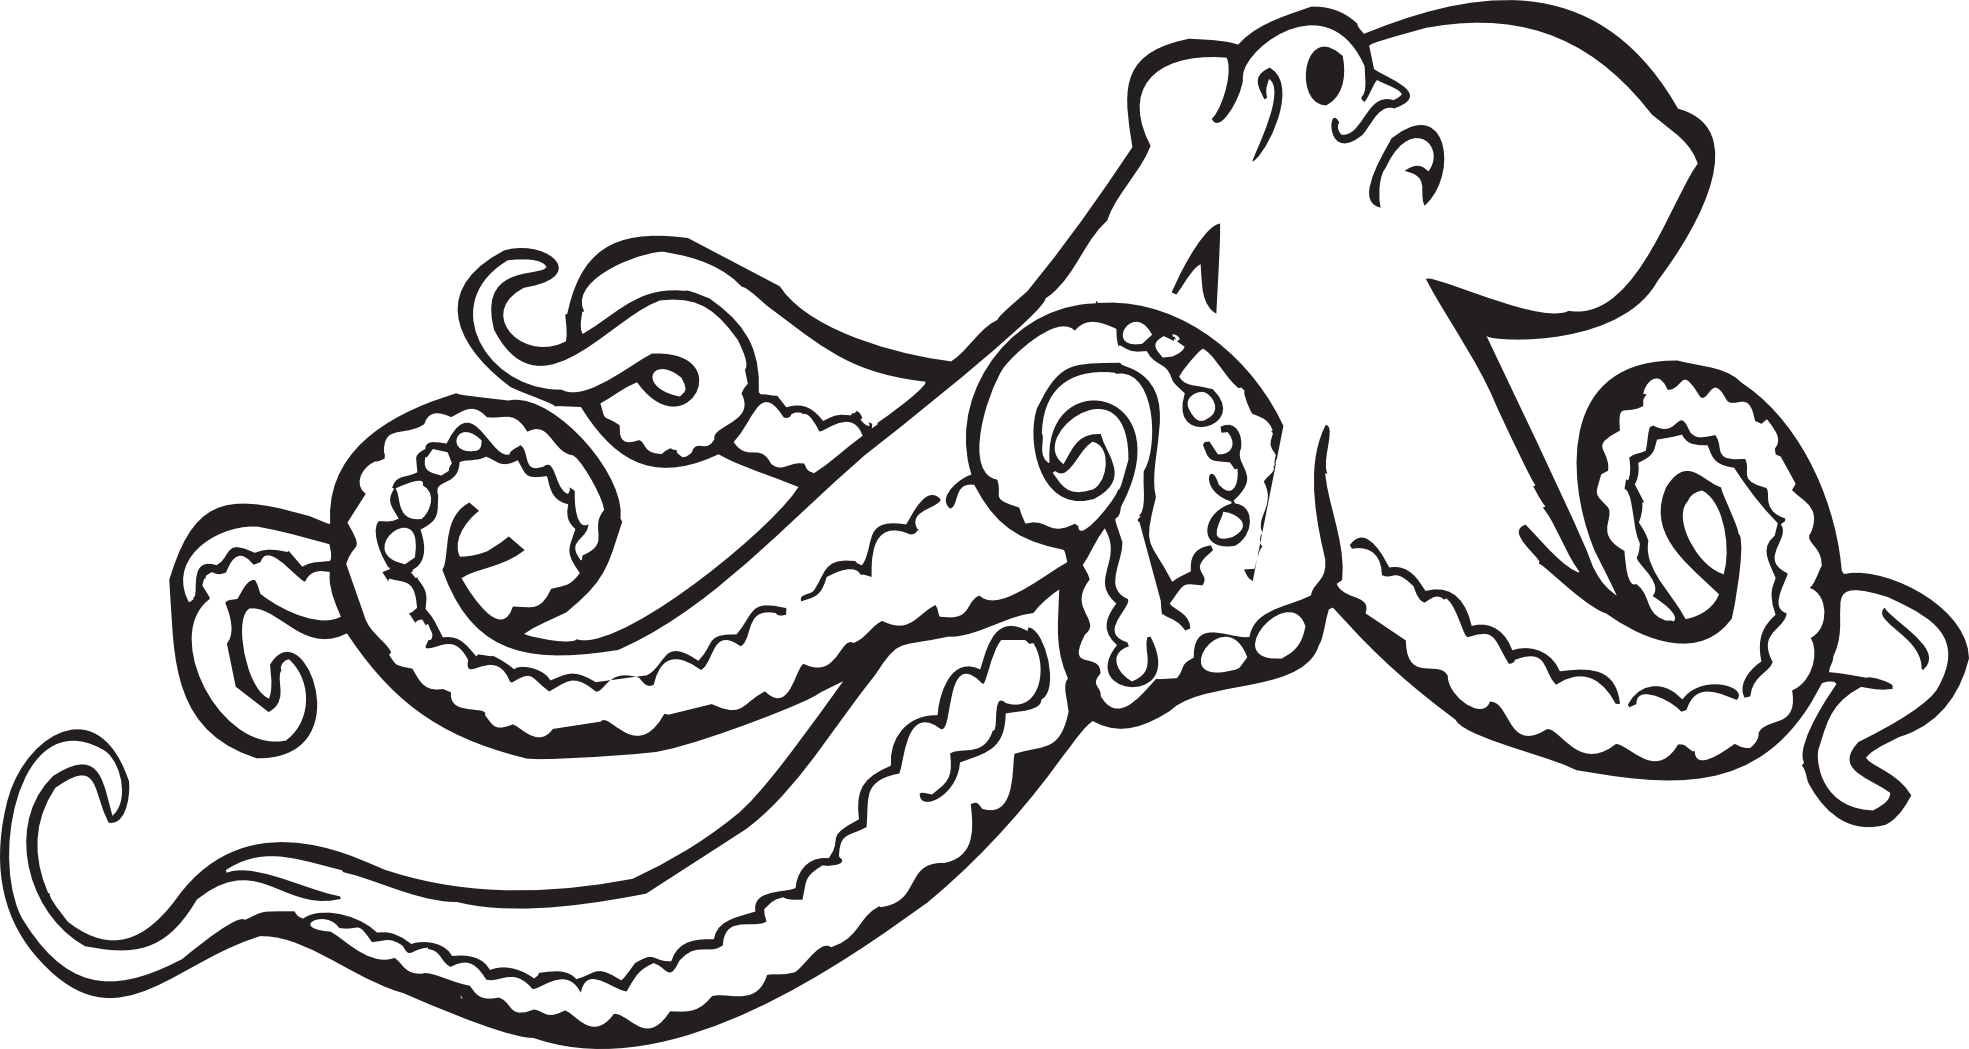 jpg royalty free download Cool black and white. Drawing octopus easy